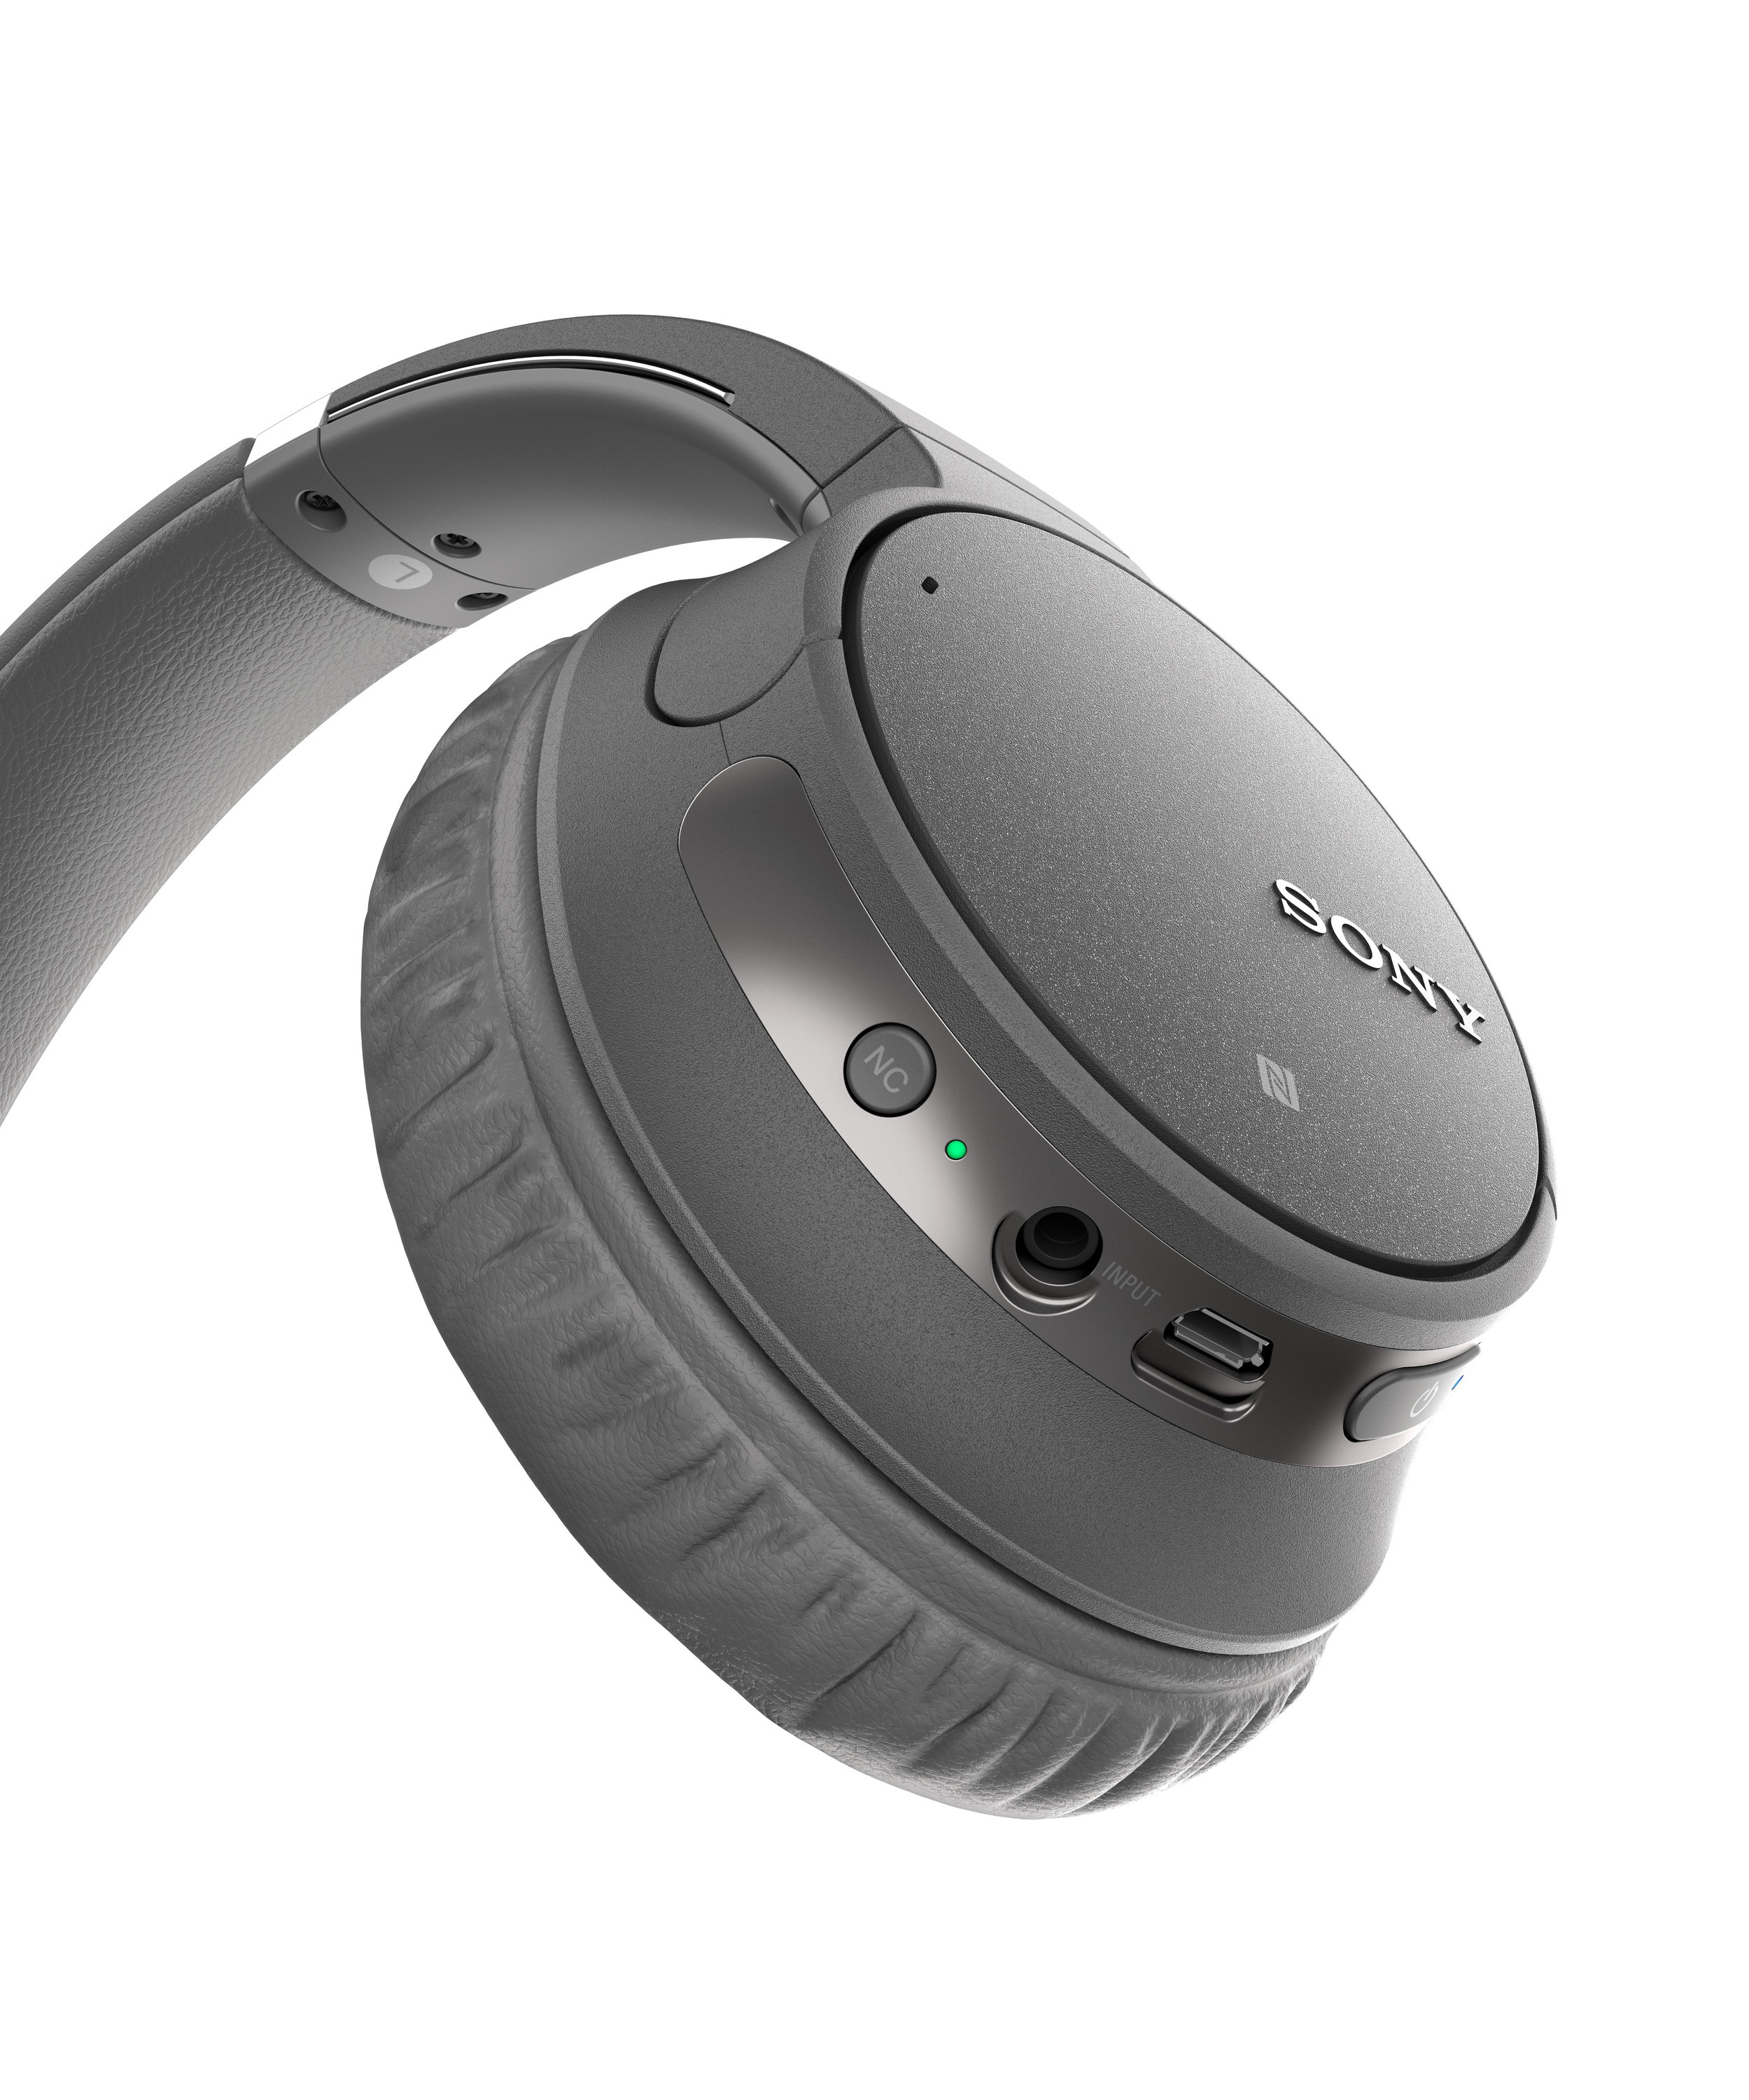 Sony-WH-CH700N-Wireless-Bluetooth-Noise-Canceling-Over-the-Ear-Headphones thumbnail 11